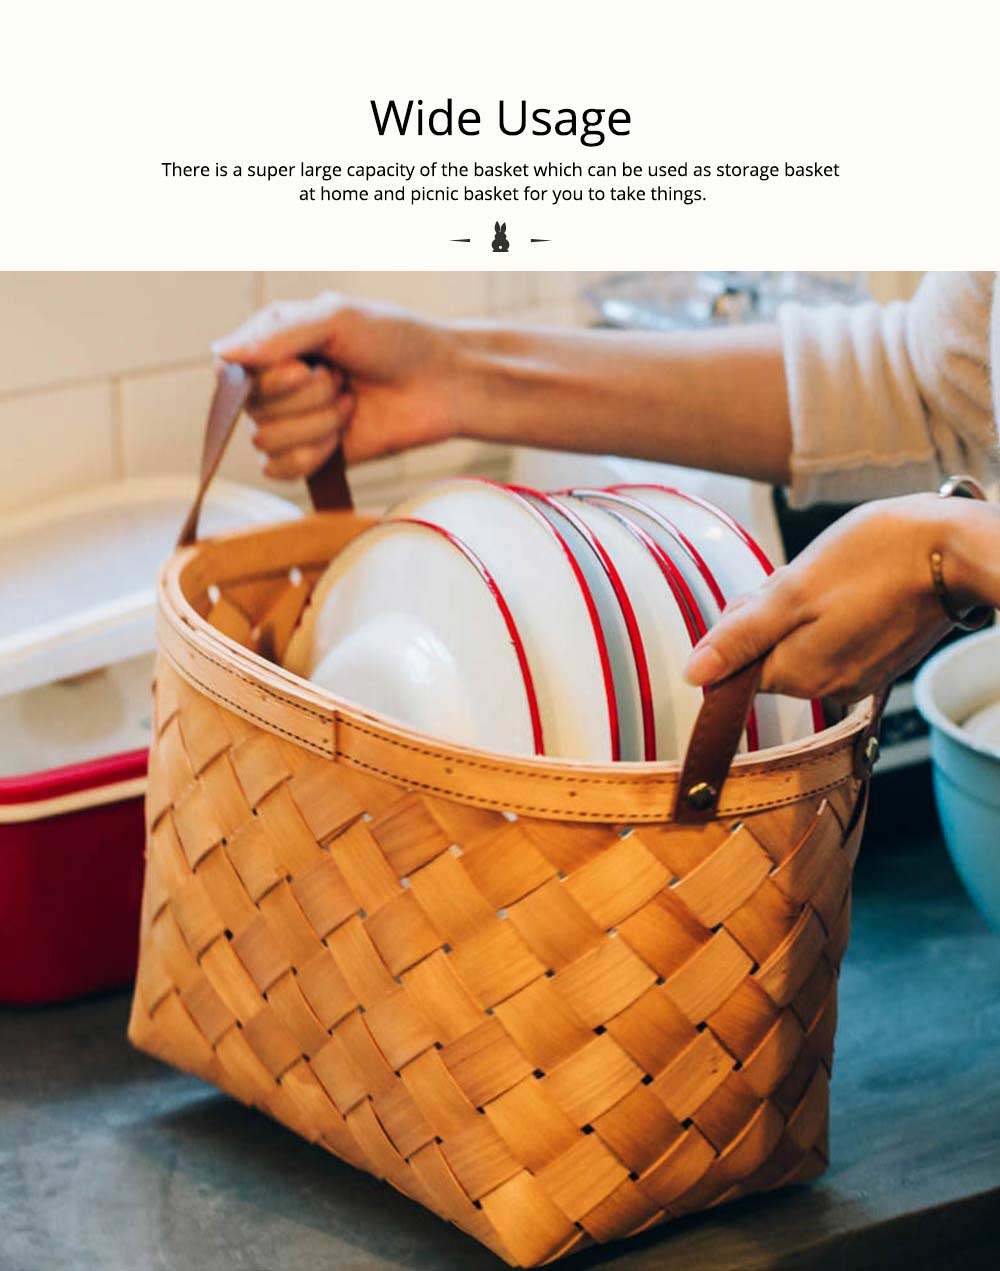 Woven Basket with Double PU Strap Handle, Large Capacity Storage Basket, Portable Picnic Basket 2